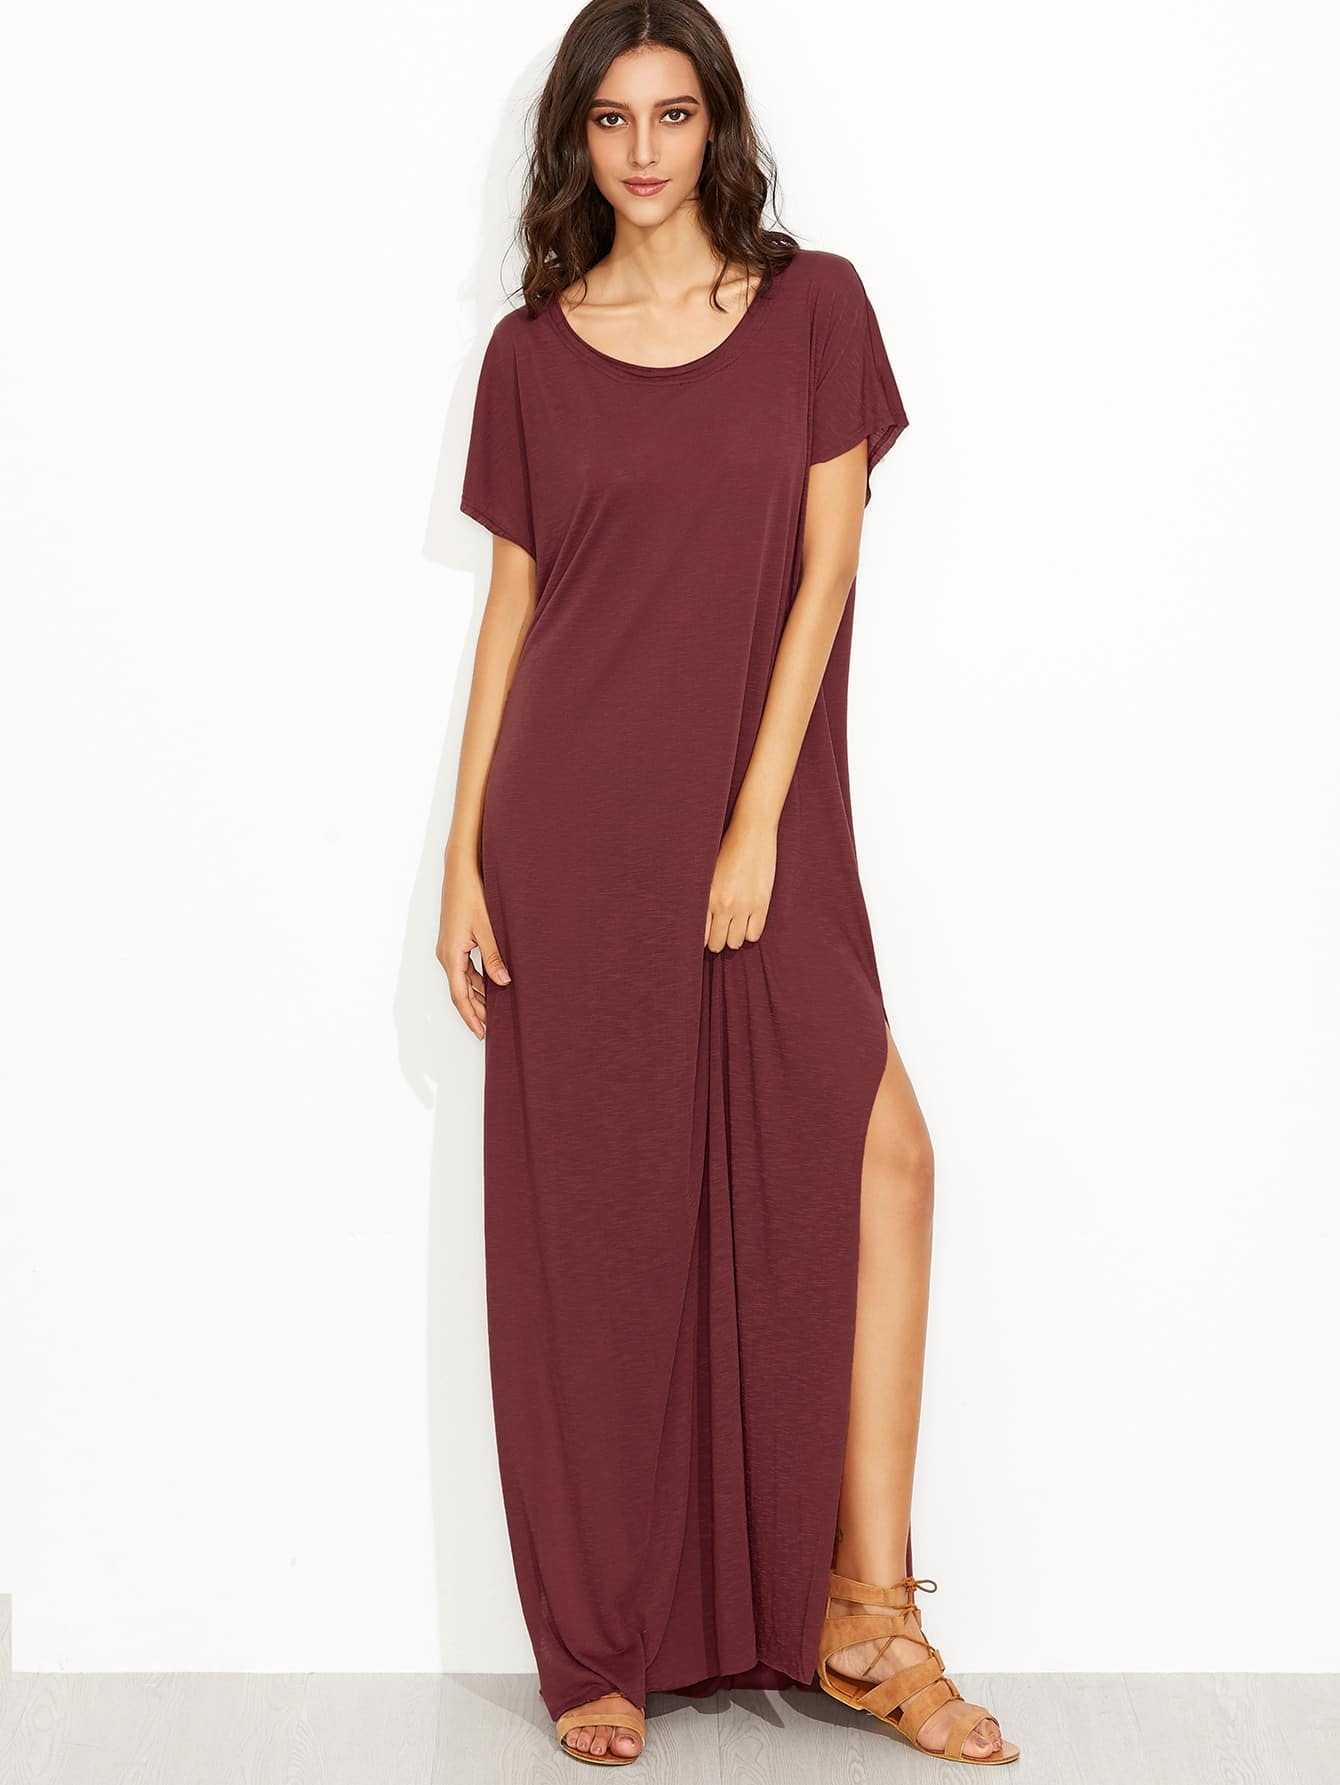 Global Maxi Dresses-Womens Global Maxi Dresses Sale -SheIn(Sheinside)